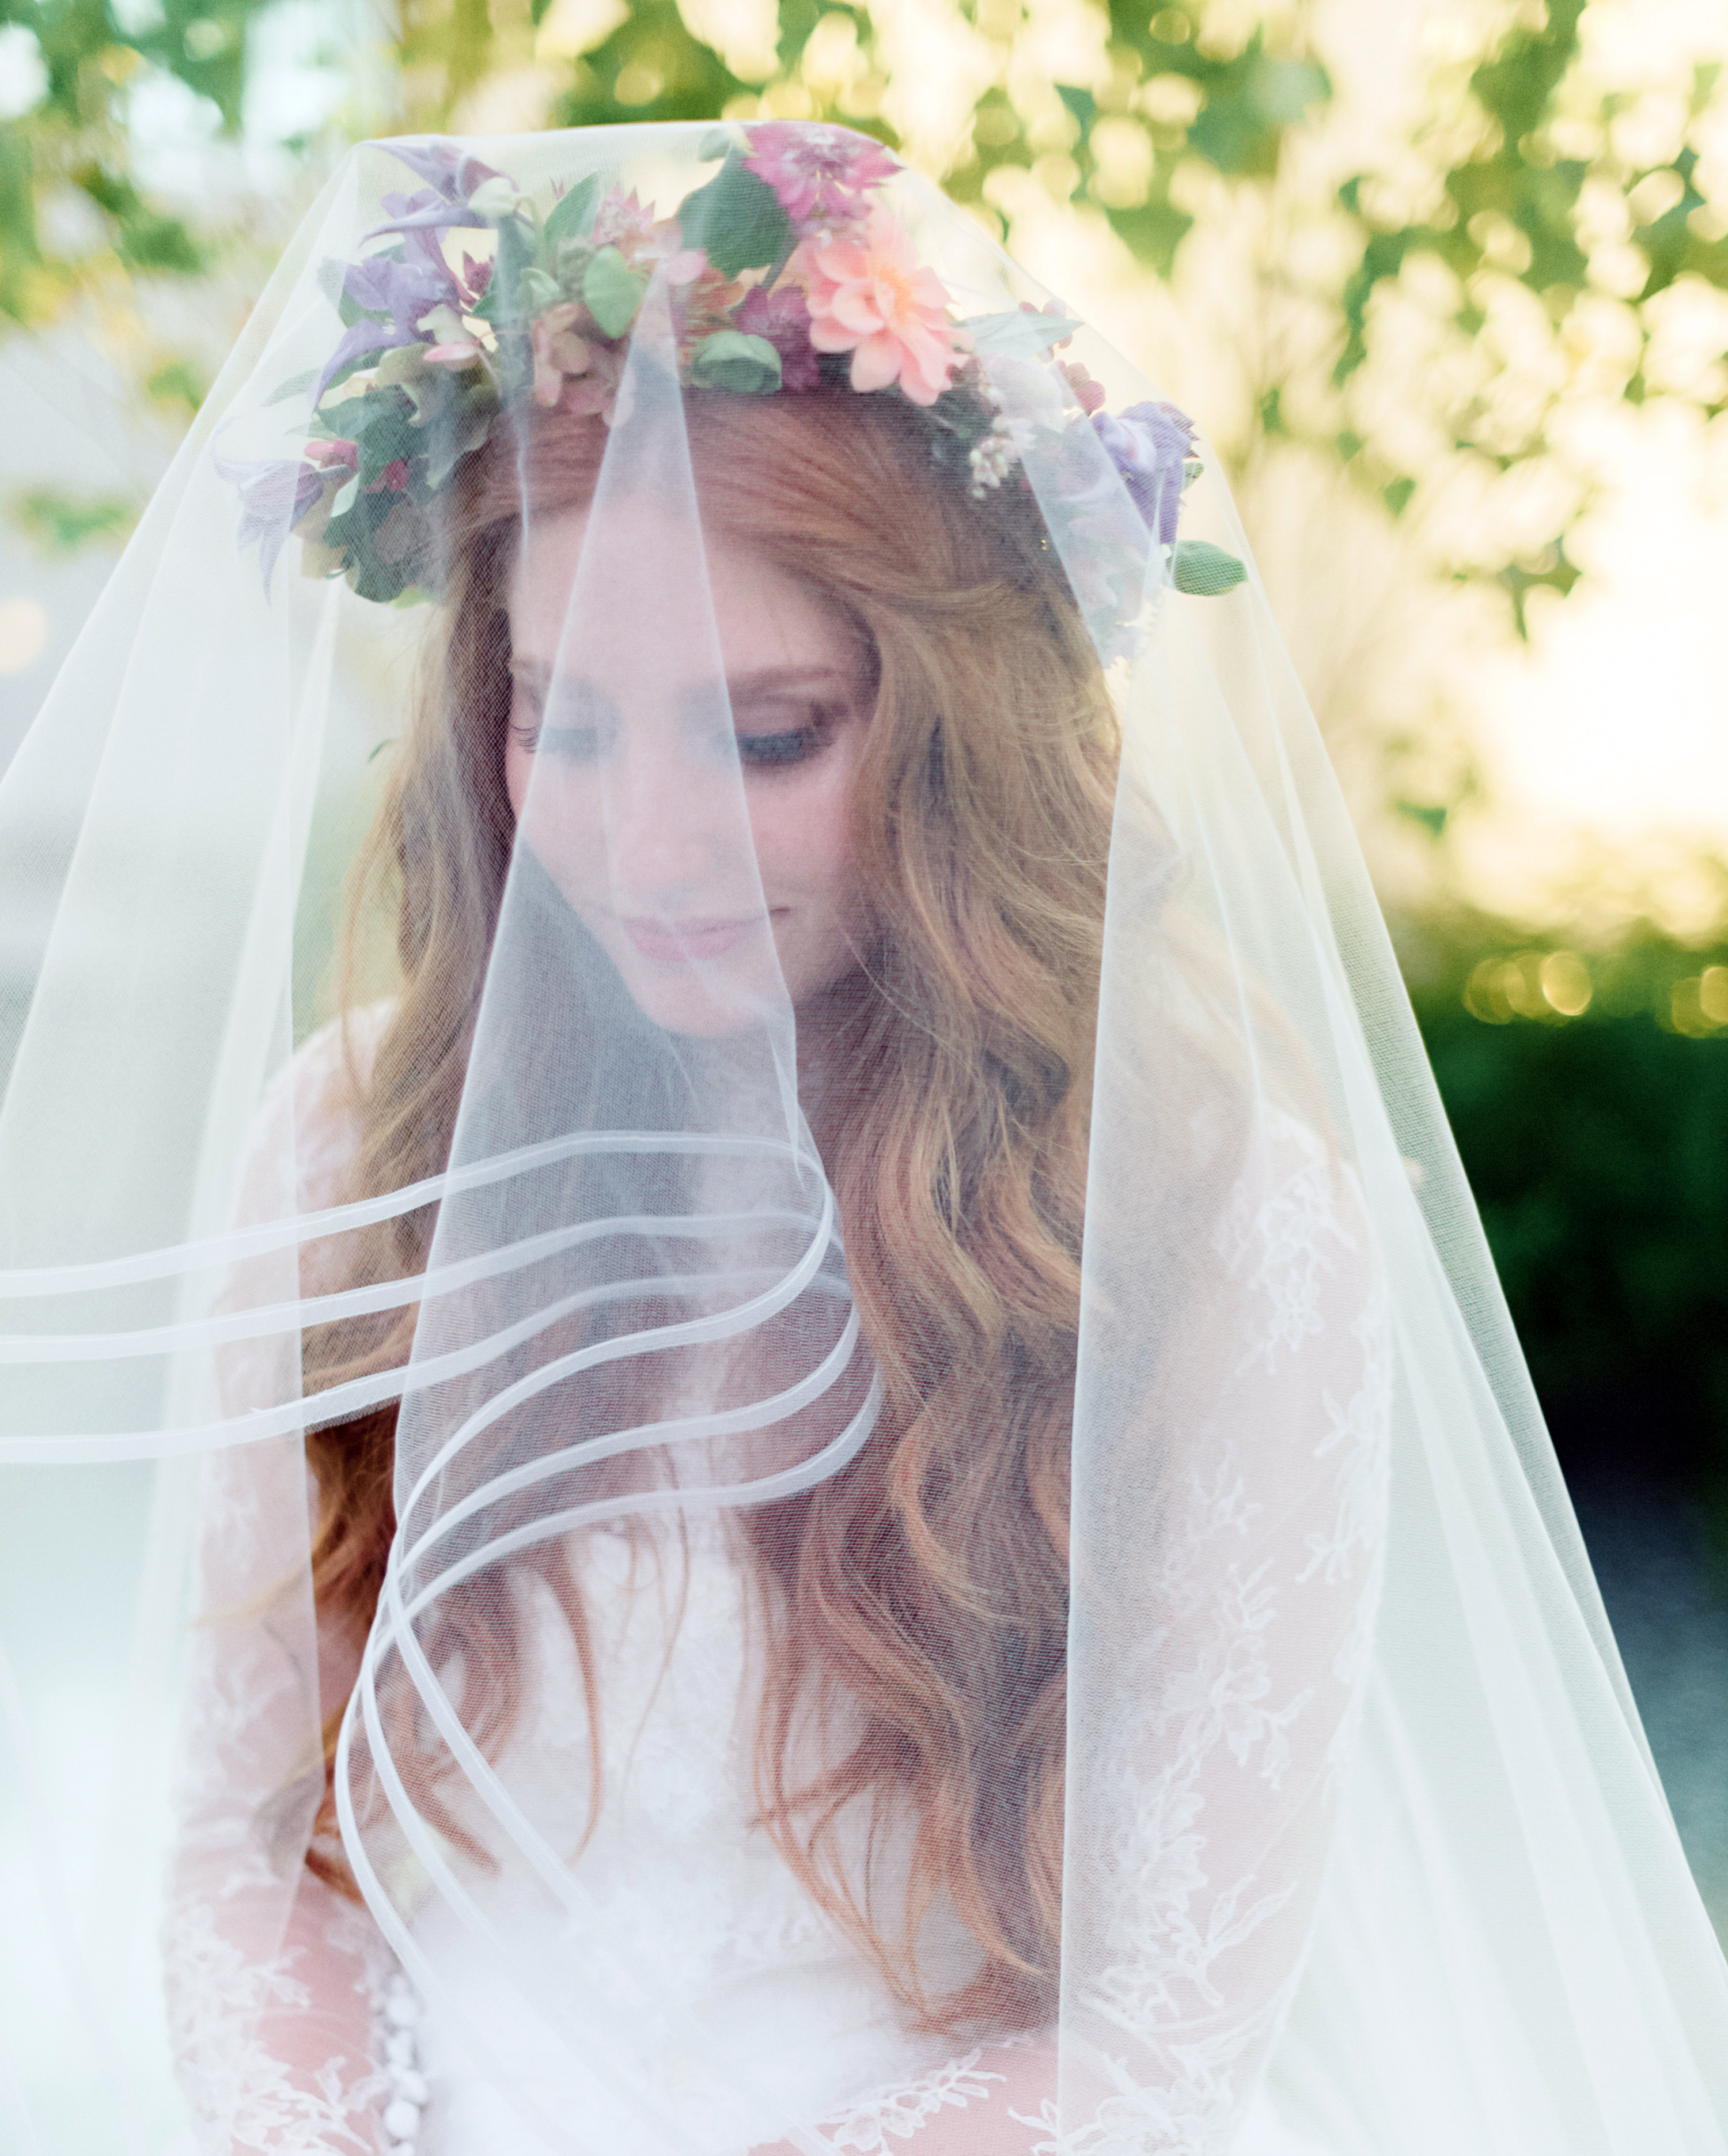 Sick of Hair Coloring? How to Go Natural in Time for Your Wedding